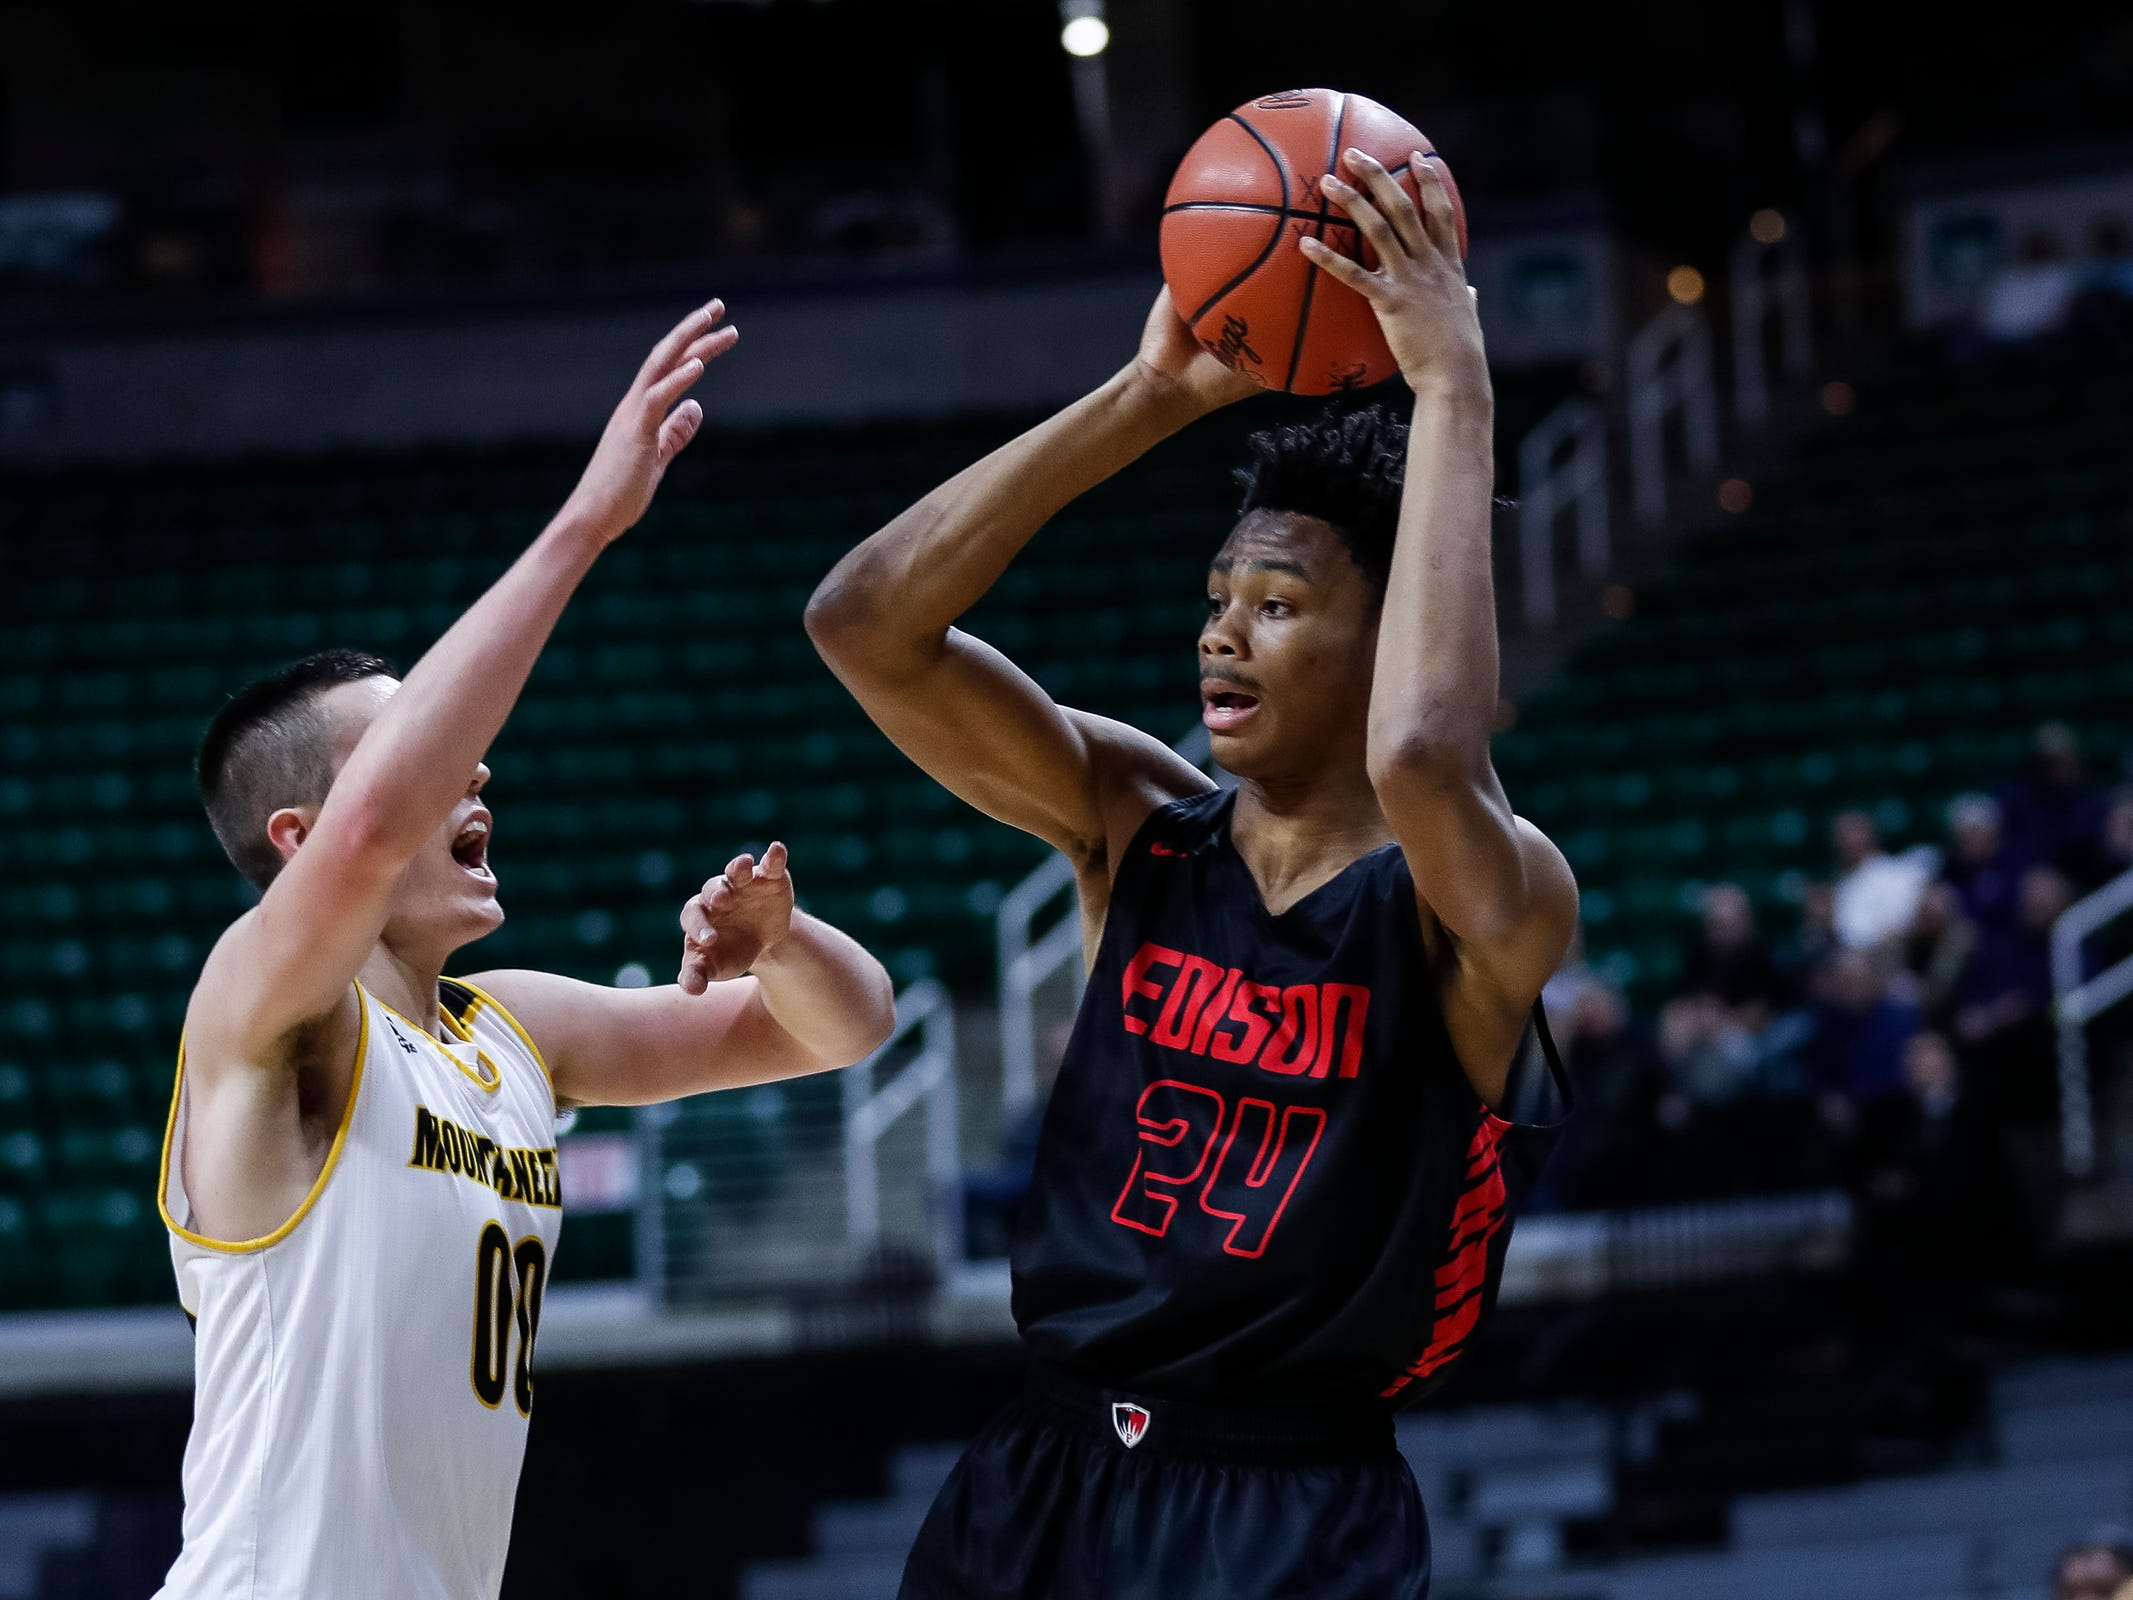 Detroit Edison's Dylan Bell looks to pass against Iron Mountain during the first half of MHSAA Division 3 semifinal at the Breslin Center in East Lansing, Thursday, March 14, 2019.